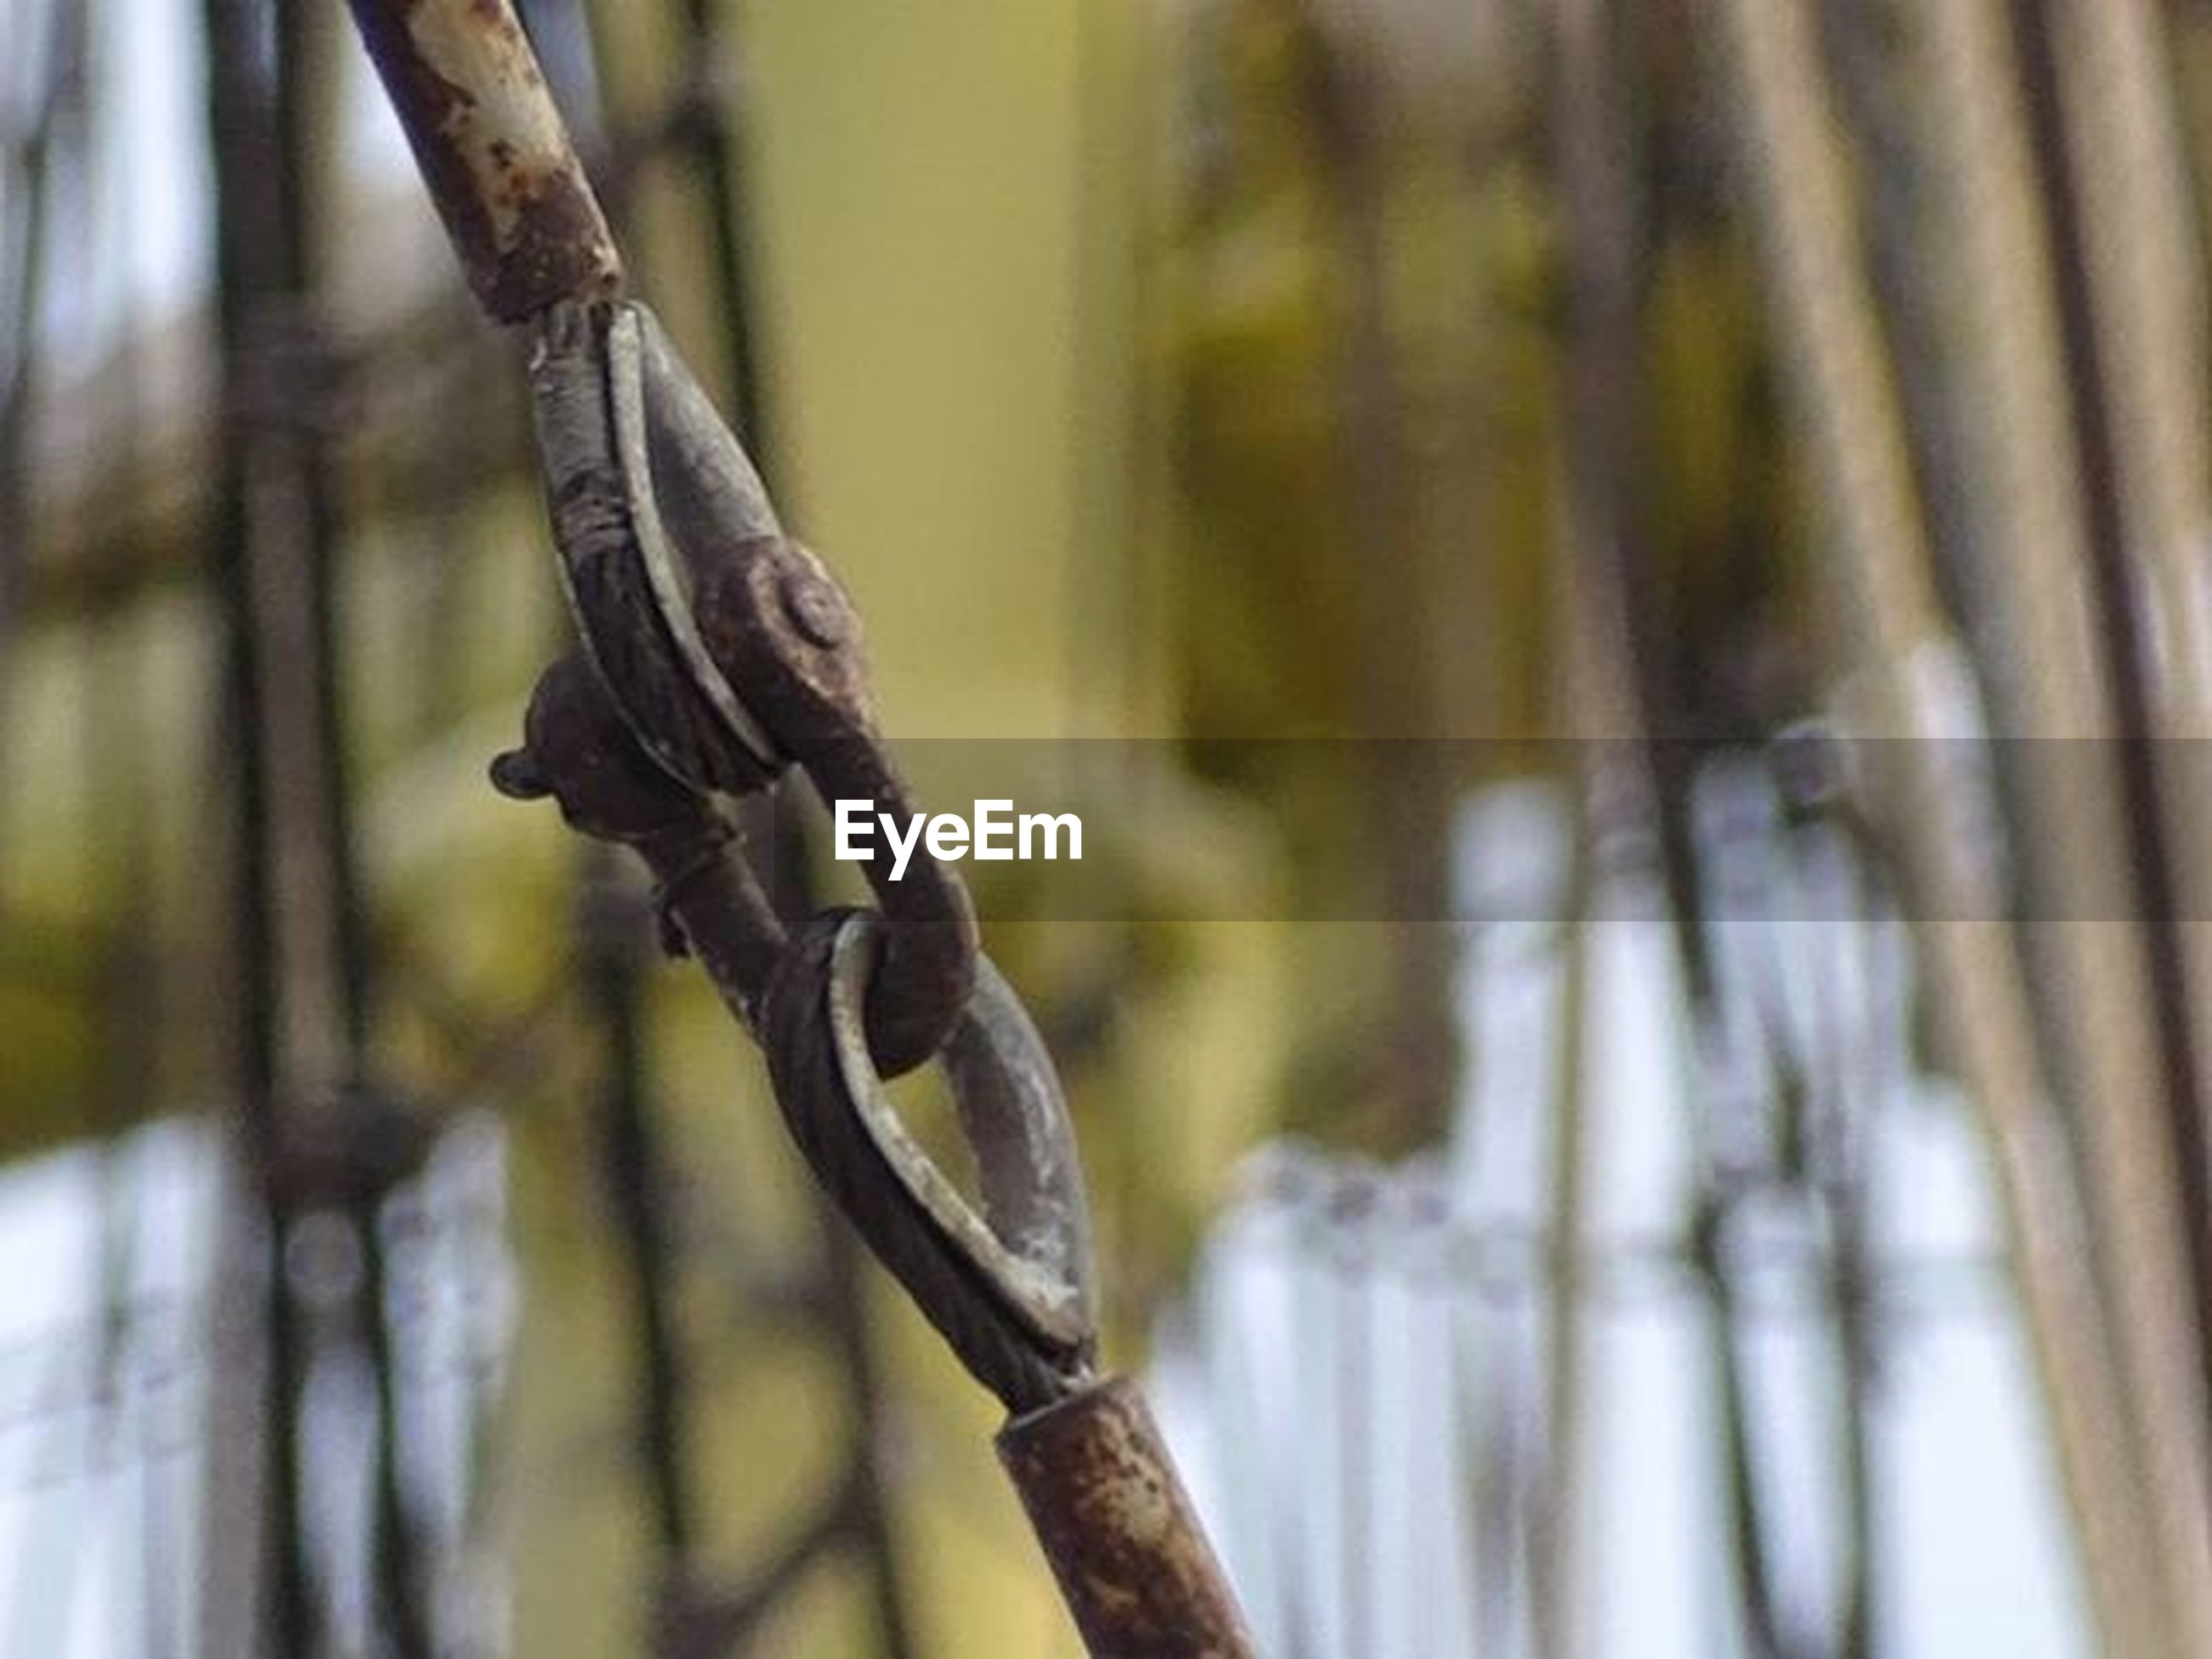 focus on foreground, close-up, selective focus, tree trunk, hanging, wood - material, tree, day, nature, no people, outdoors, branch, wood, twig, forest, rope, pole, metal, growth, textured